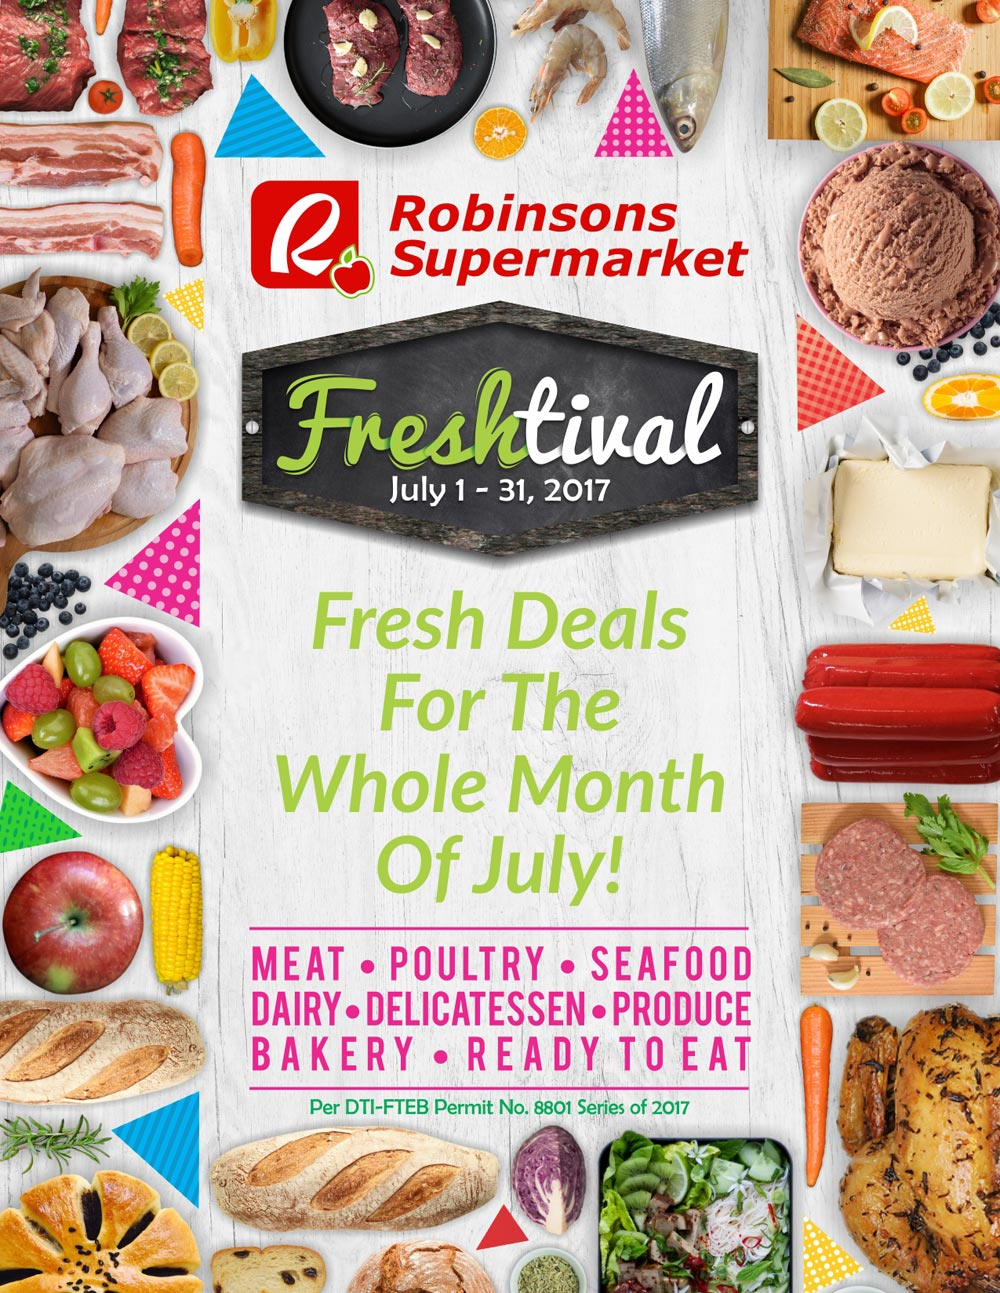 Don't miss the last few days to score fresh deals at Robinsons Supermarket's Freshtival